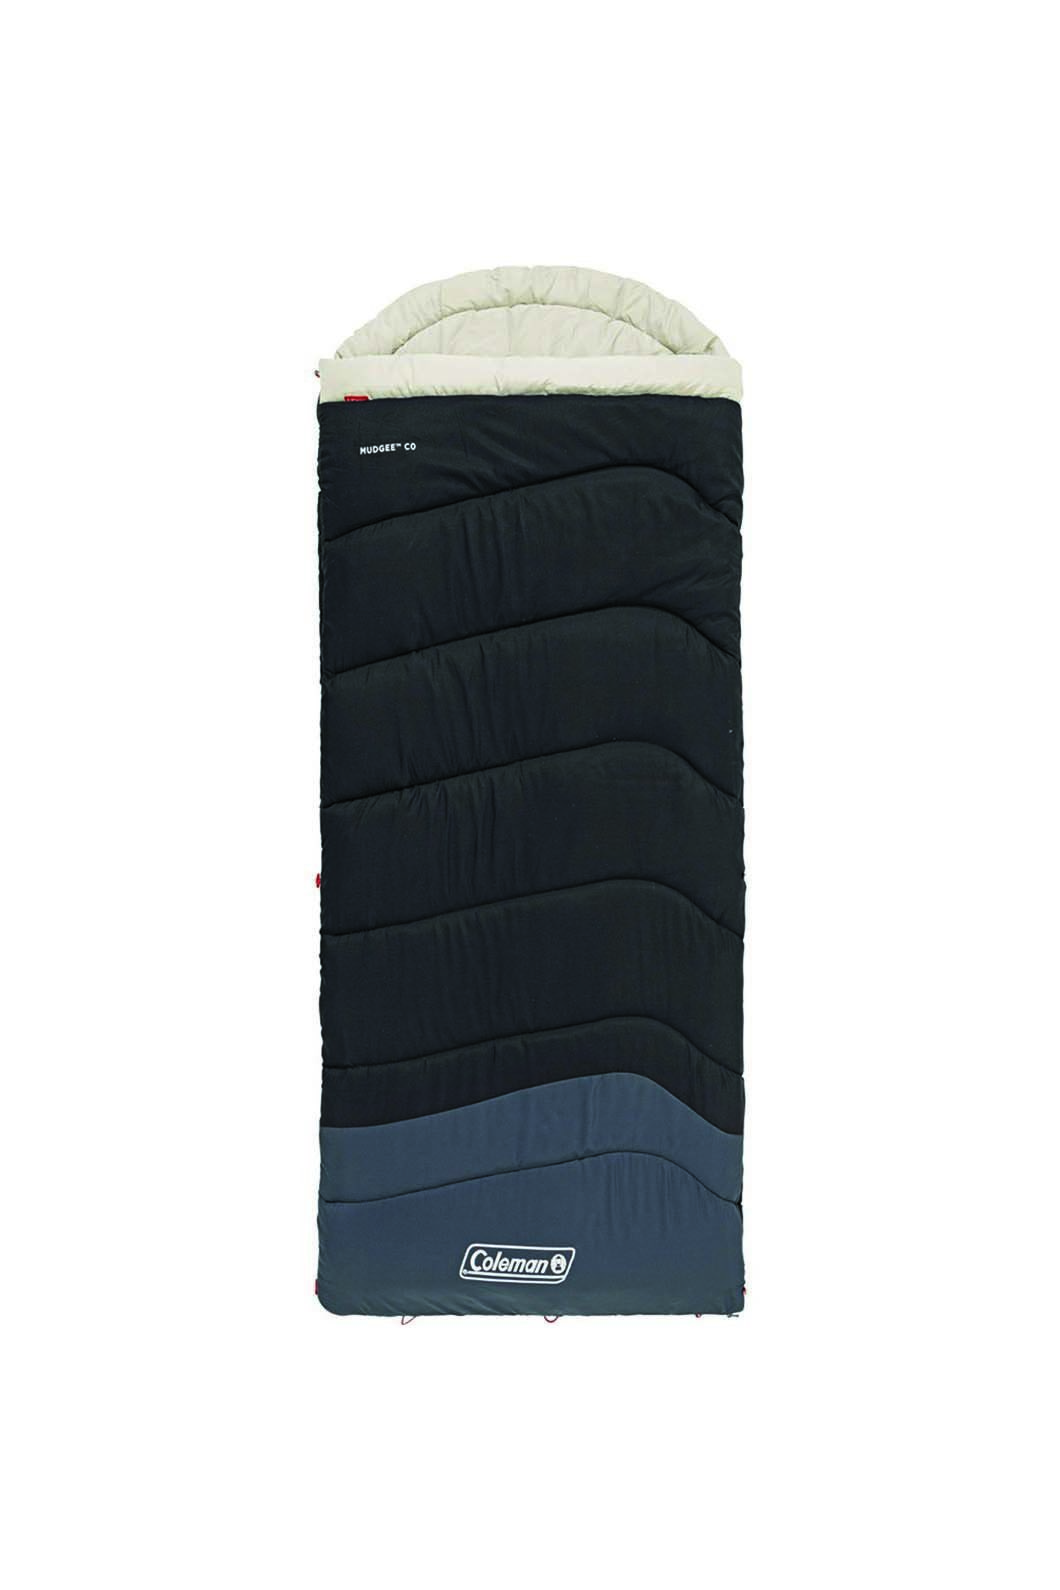 Coleman Mudgee Tall Sleeping Bag 0, None, hi-res